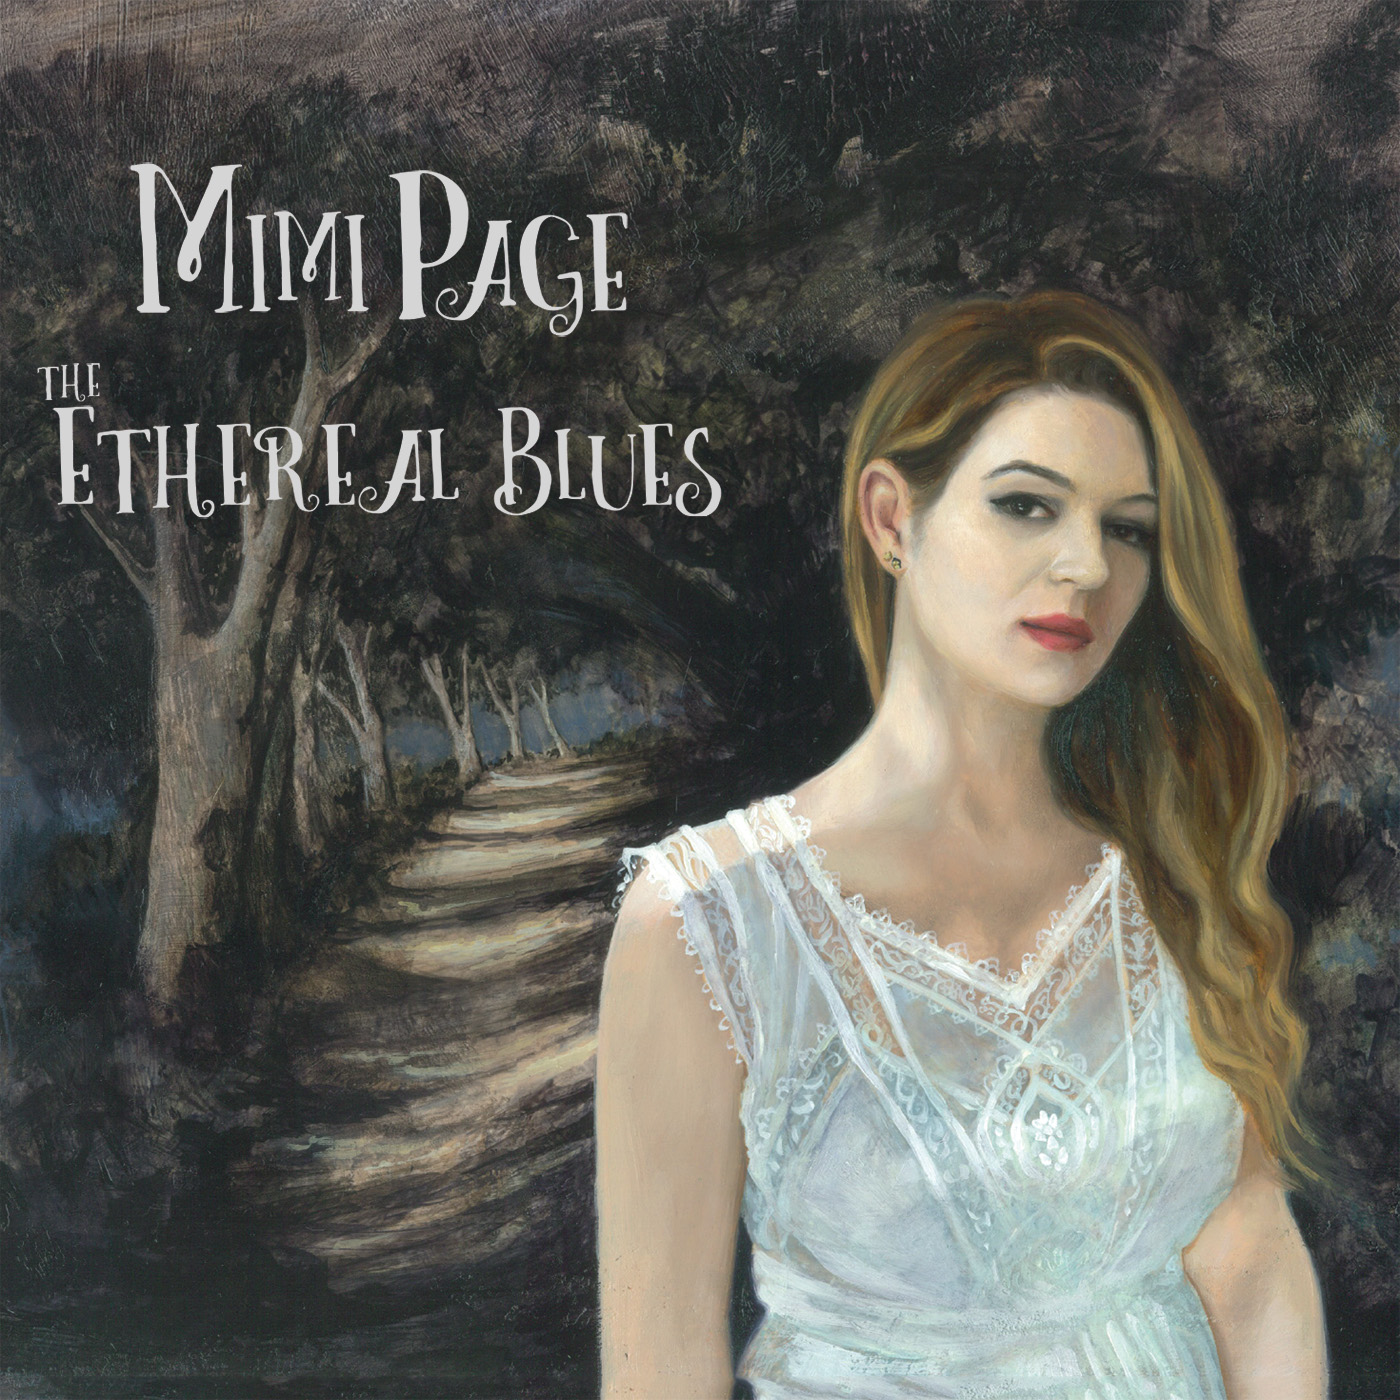 Mimi Page - The Ethereal Blues